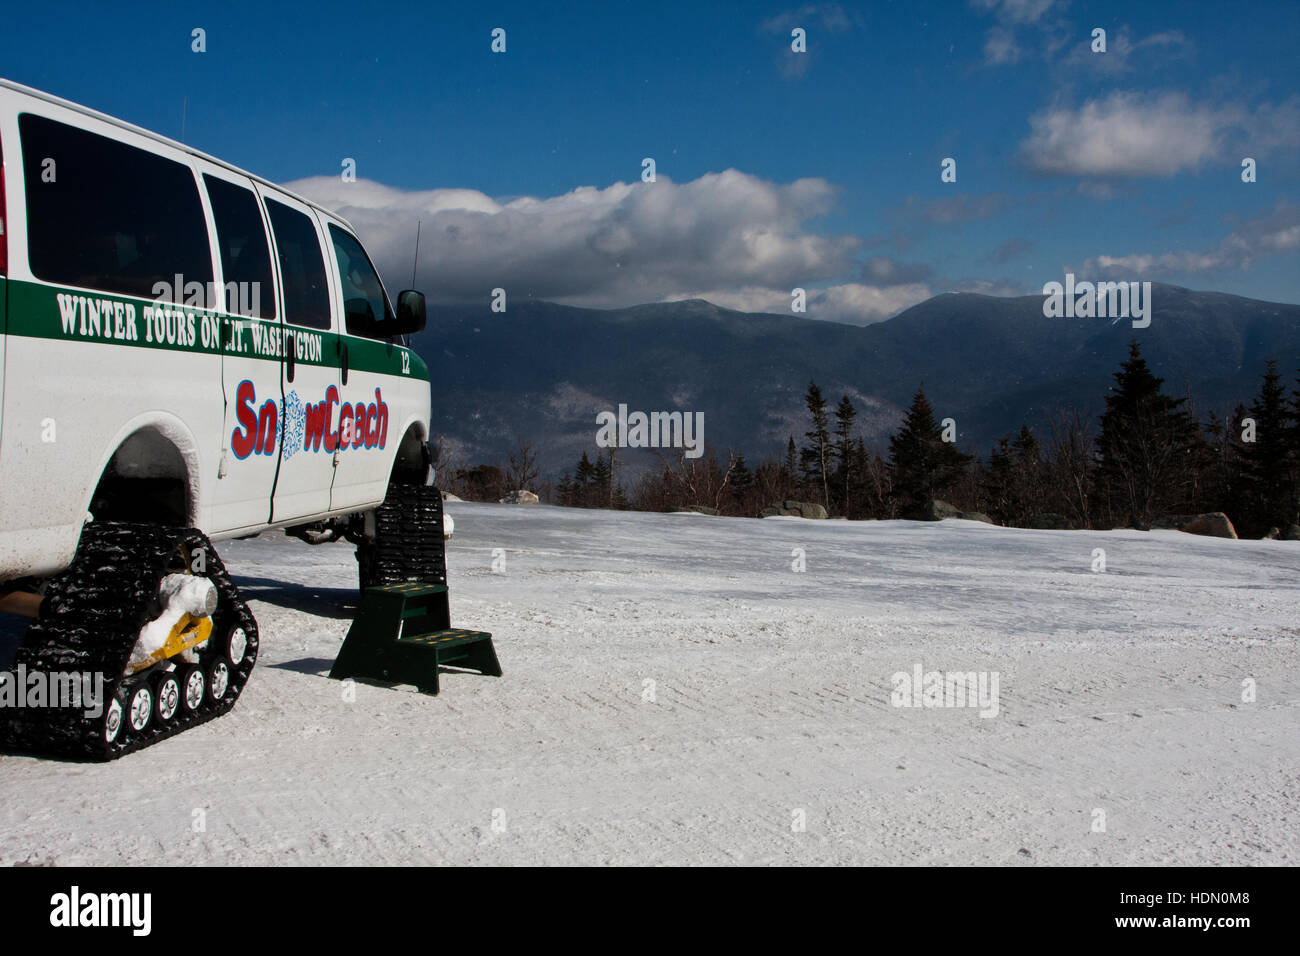 Mount Washington Valley, Pinkham Notch, New Hampshire, Great Glen Outdoor Center, the Snow Coach on the mountain - Stock Image